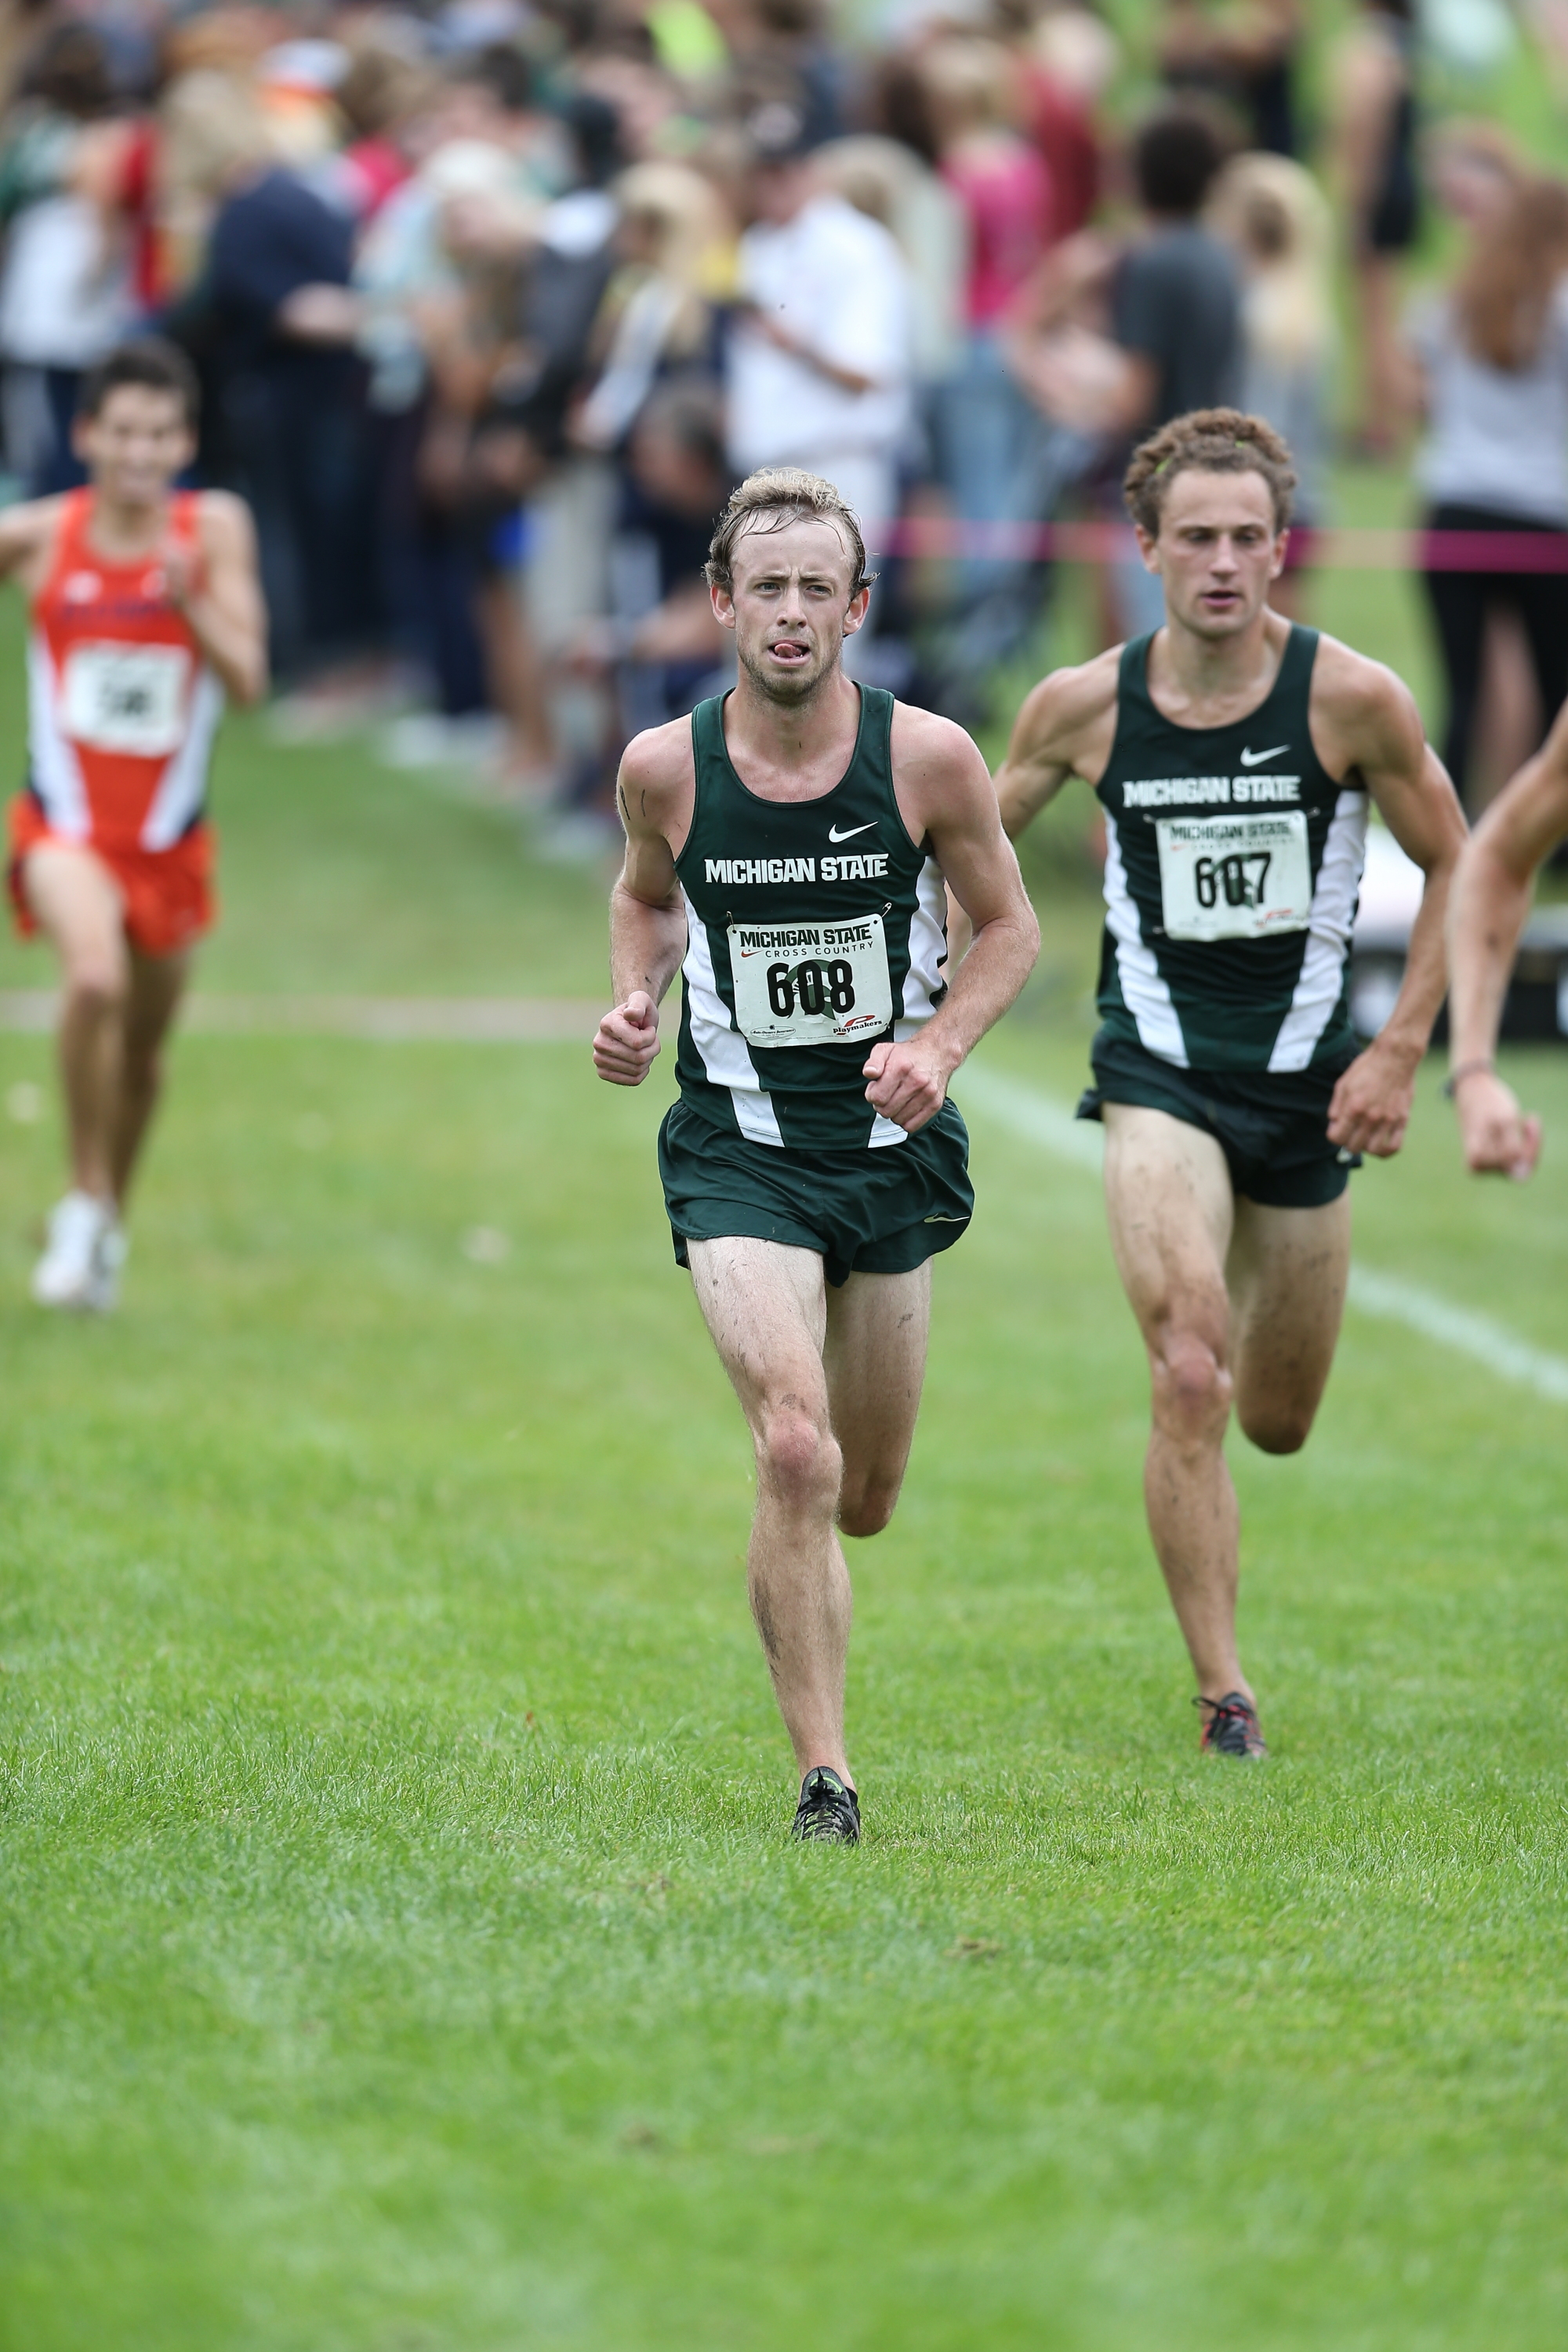 Spartan Cross Country Set For National Championships - Michigan